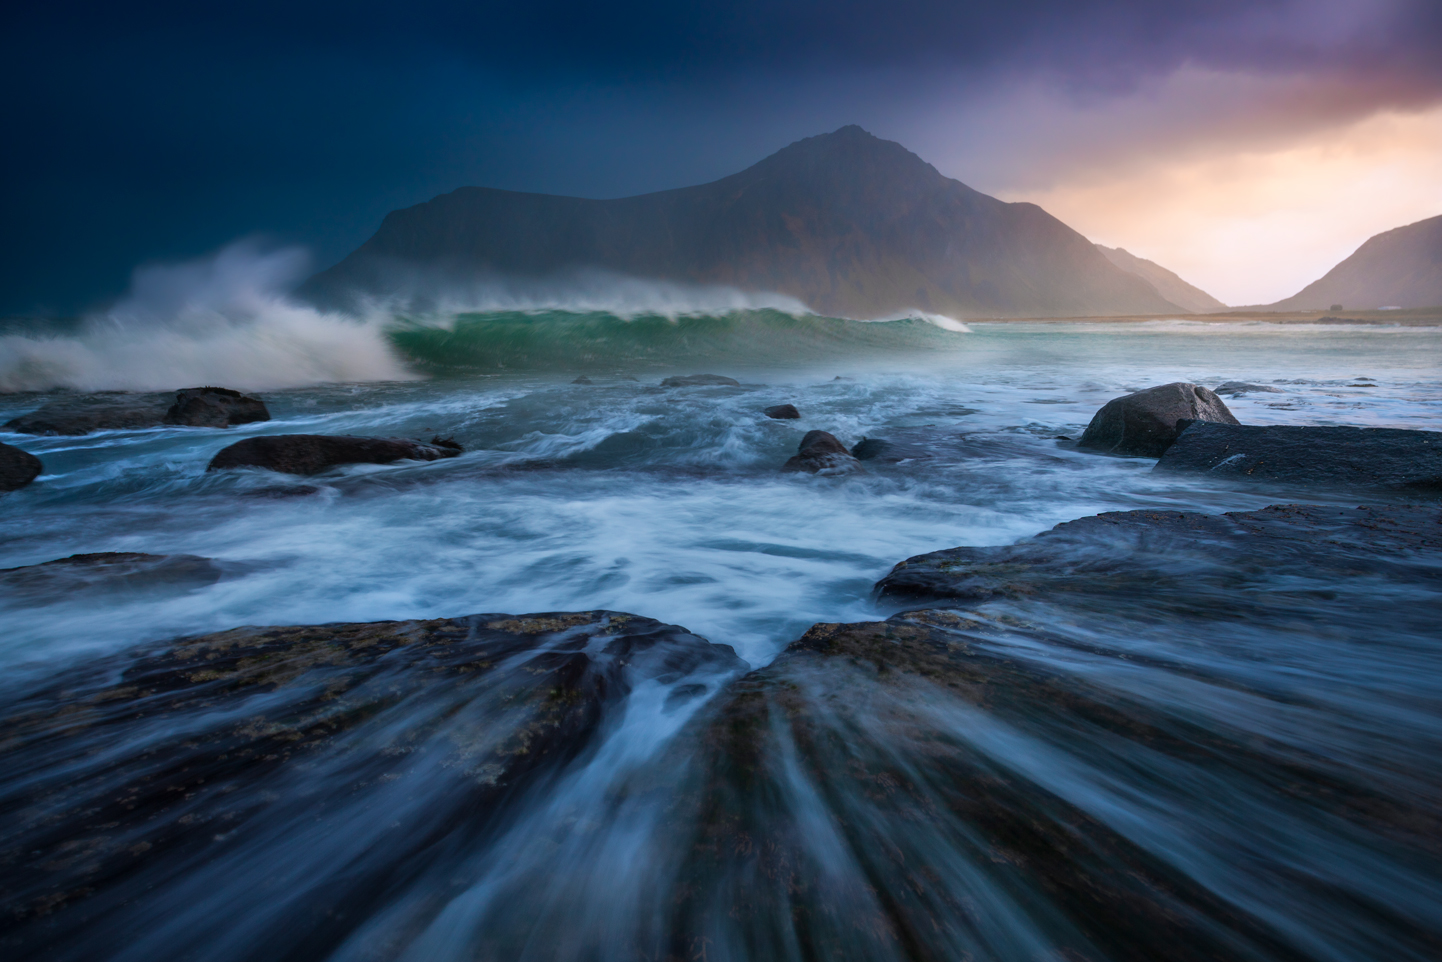 Large swell and mountains by the sea. Lofoten Islands, Norway.